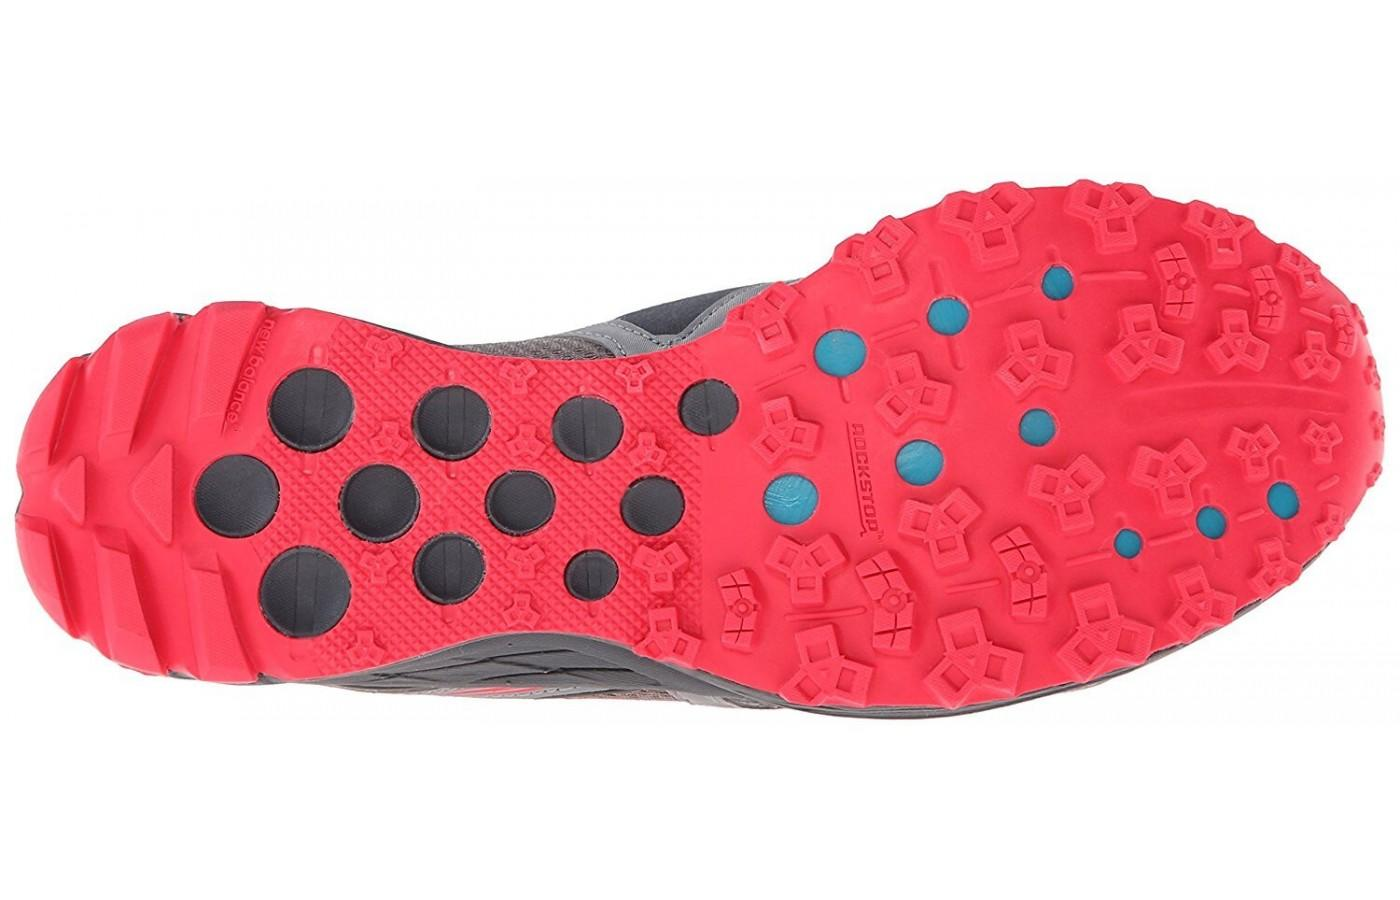 The At Tread Outsole is very durable and has an advanced grip